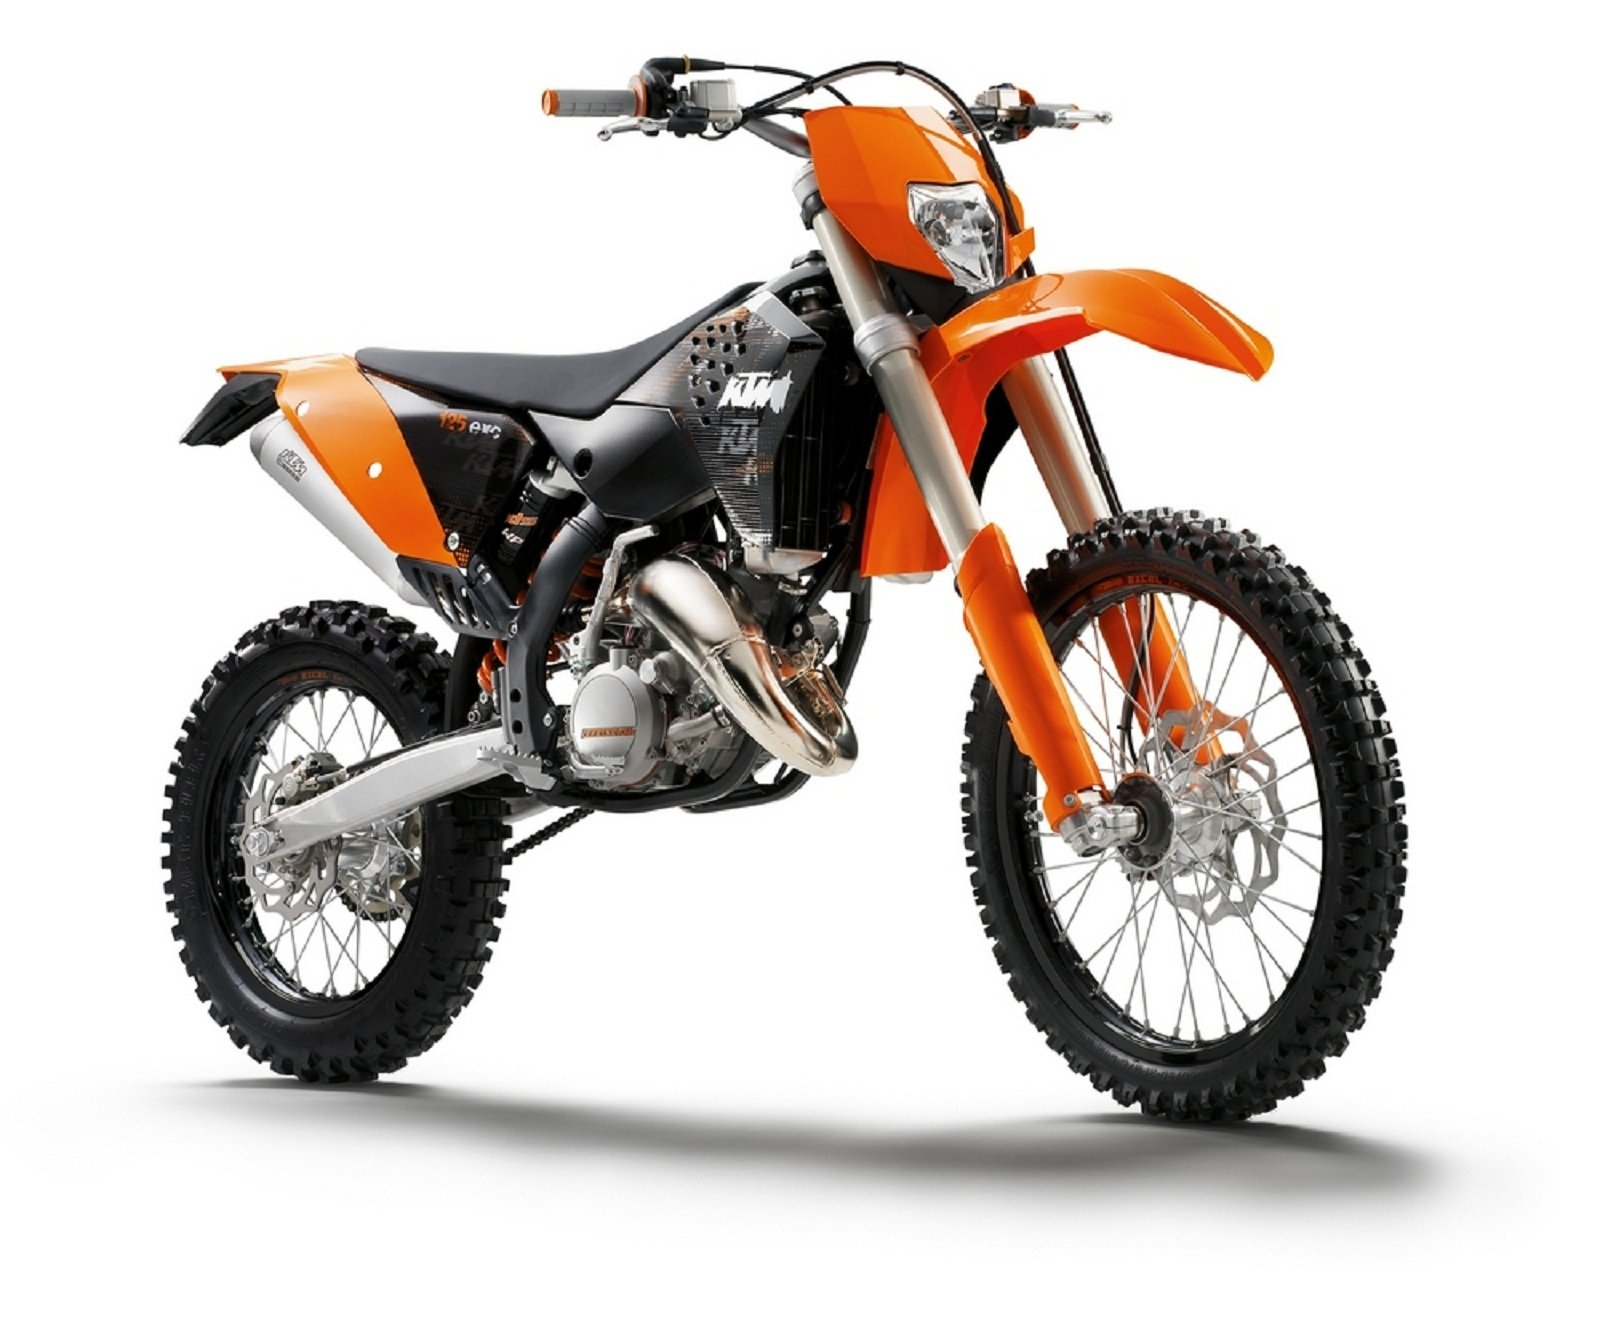 2012 ktm 125 exc six days picture 435527 motorcycle. Black Bedroom Furniture Sets. Home Design Ideas